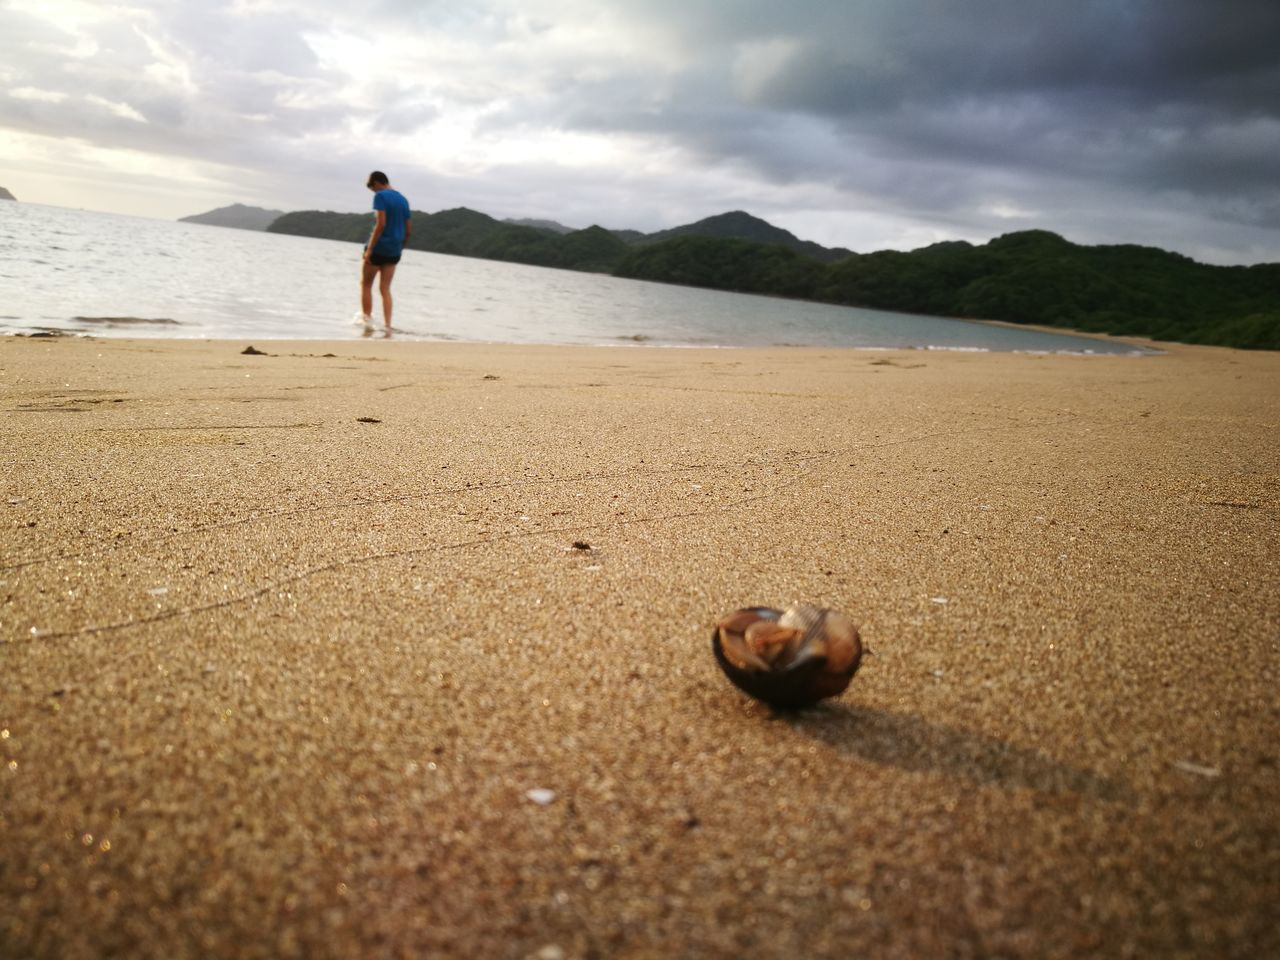 Surface Level View Of Animal Shell On Sand With Man At Beach Against Cloudy Sky